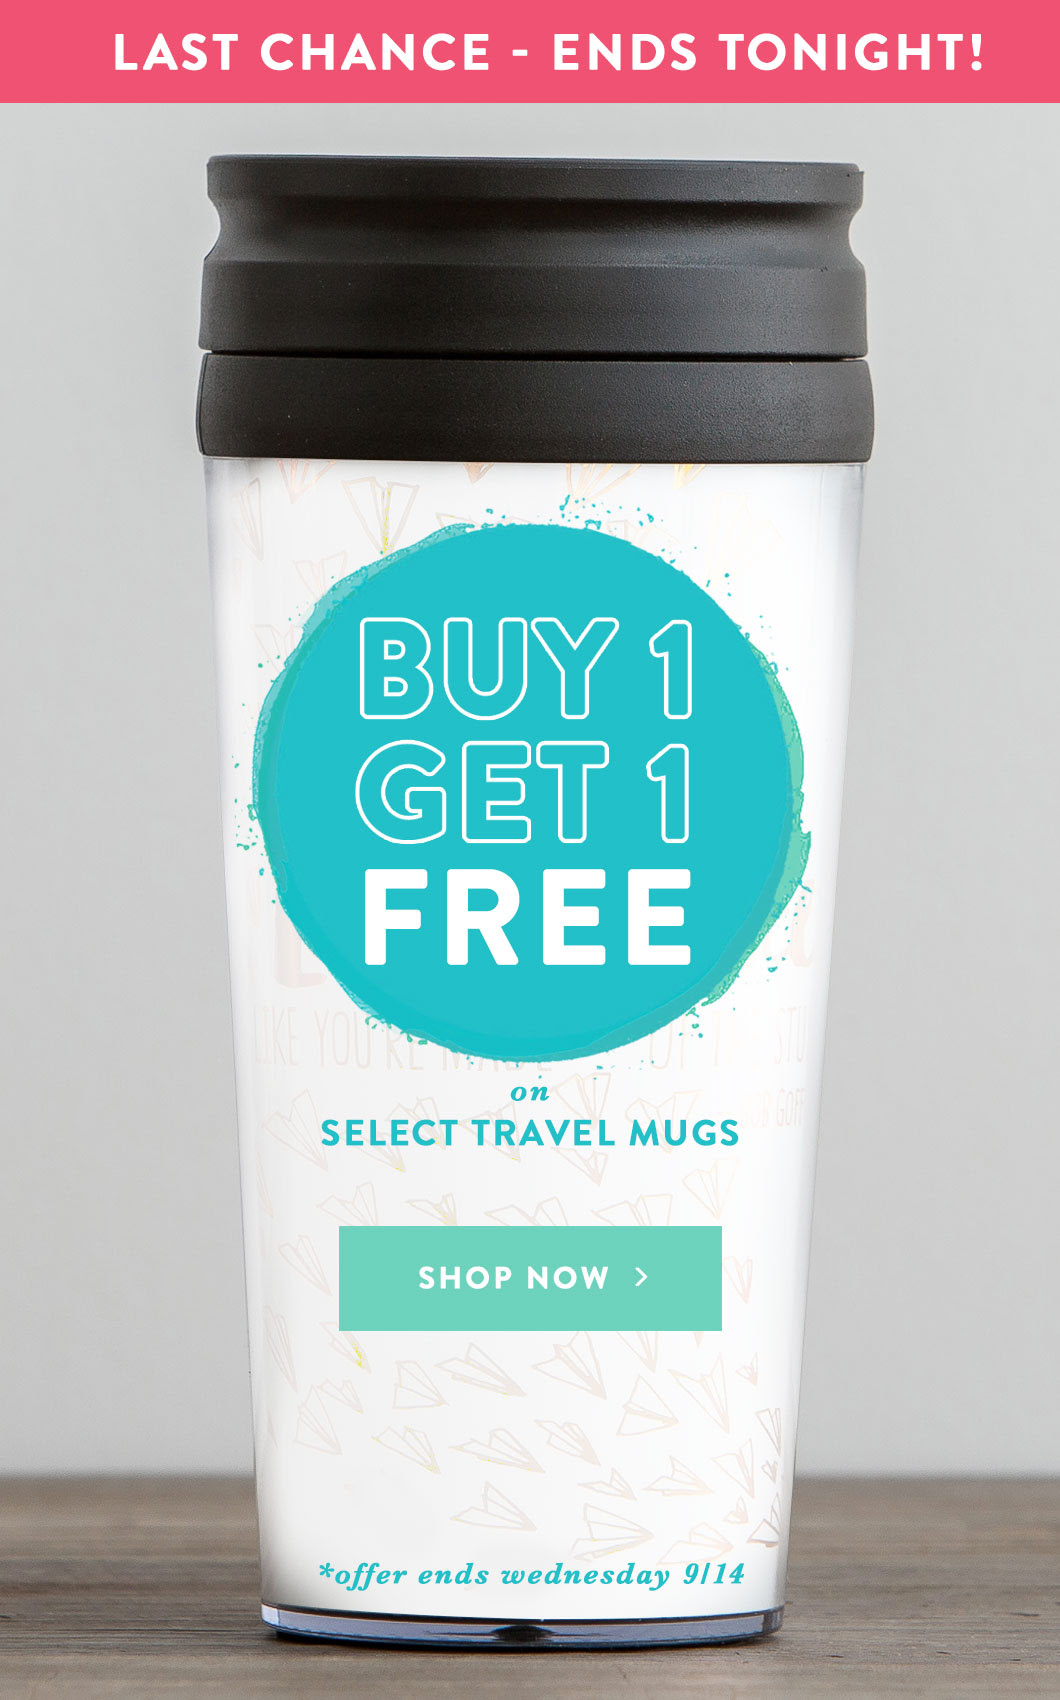 Last Chance Travel Mug BOGO